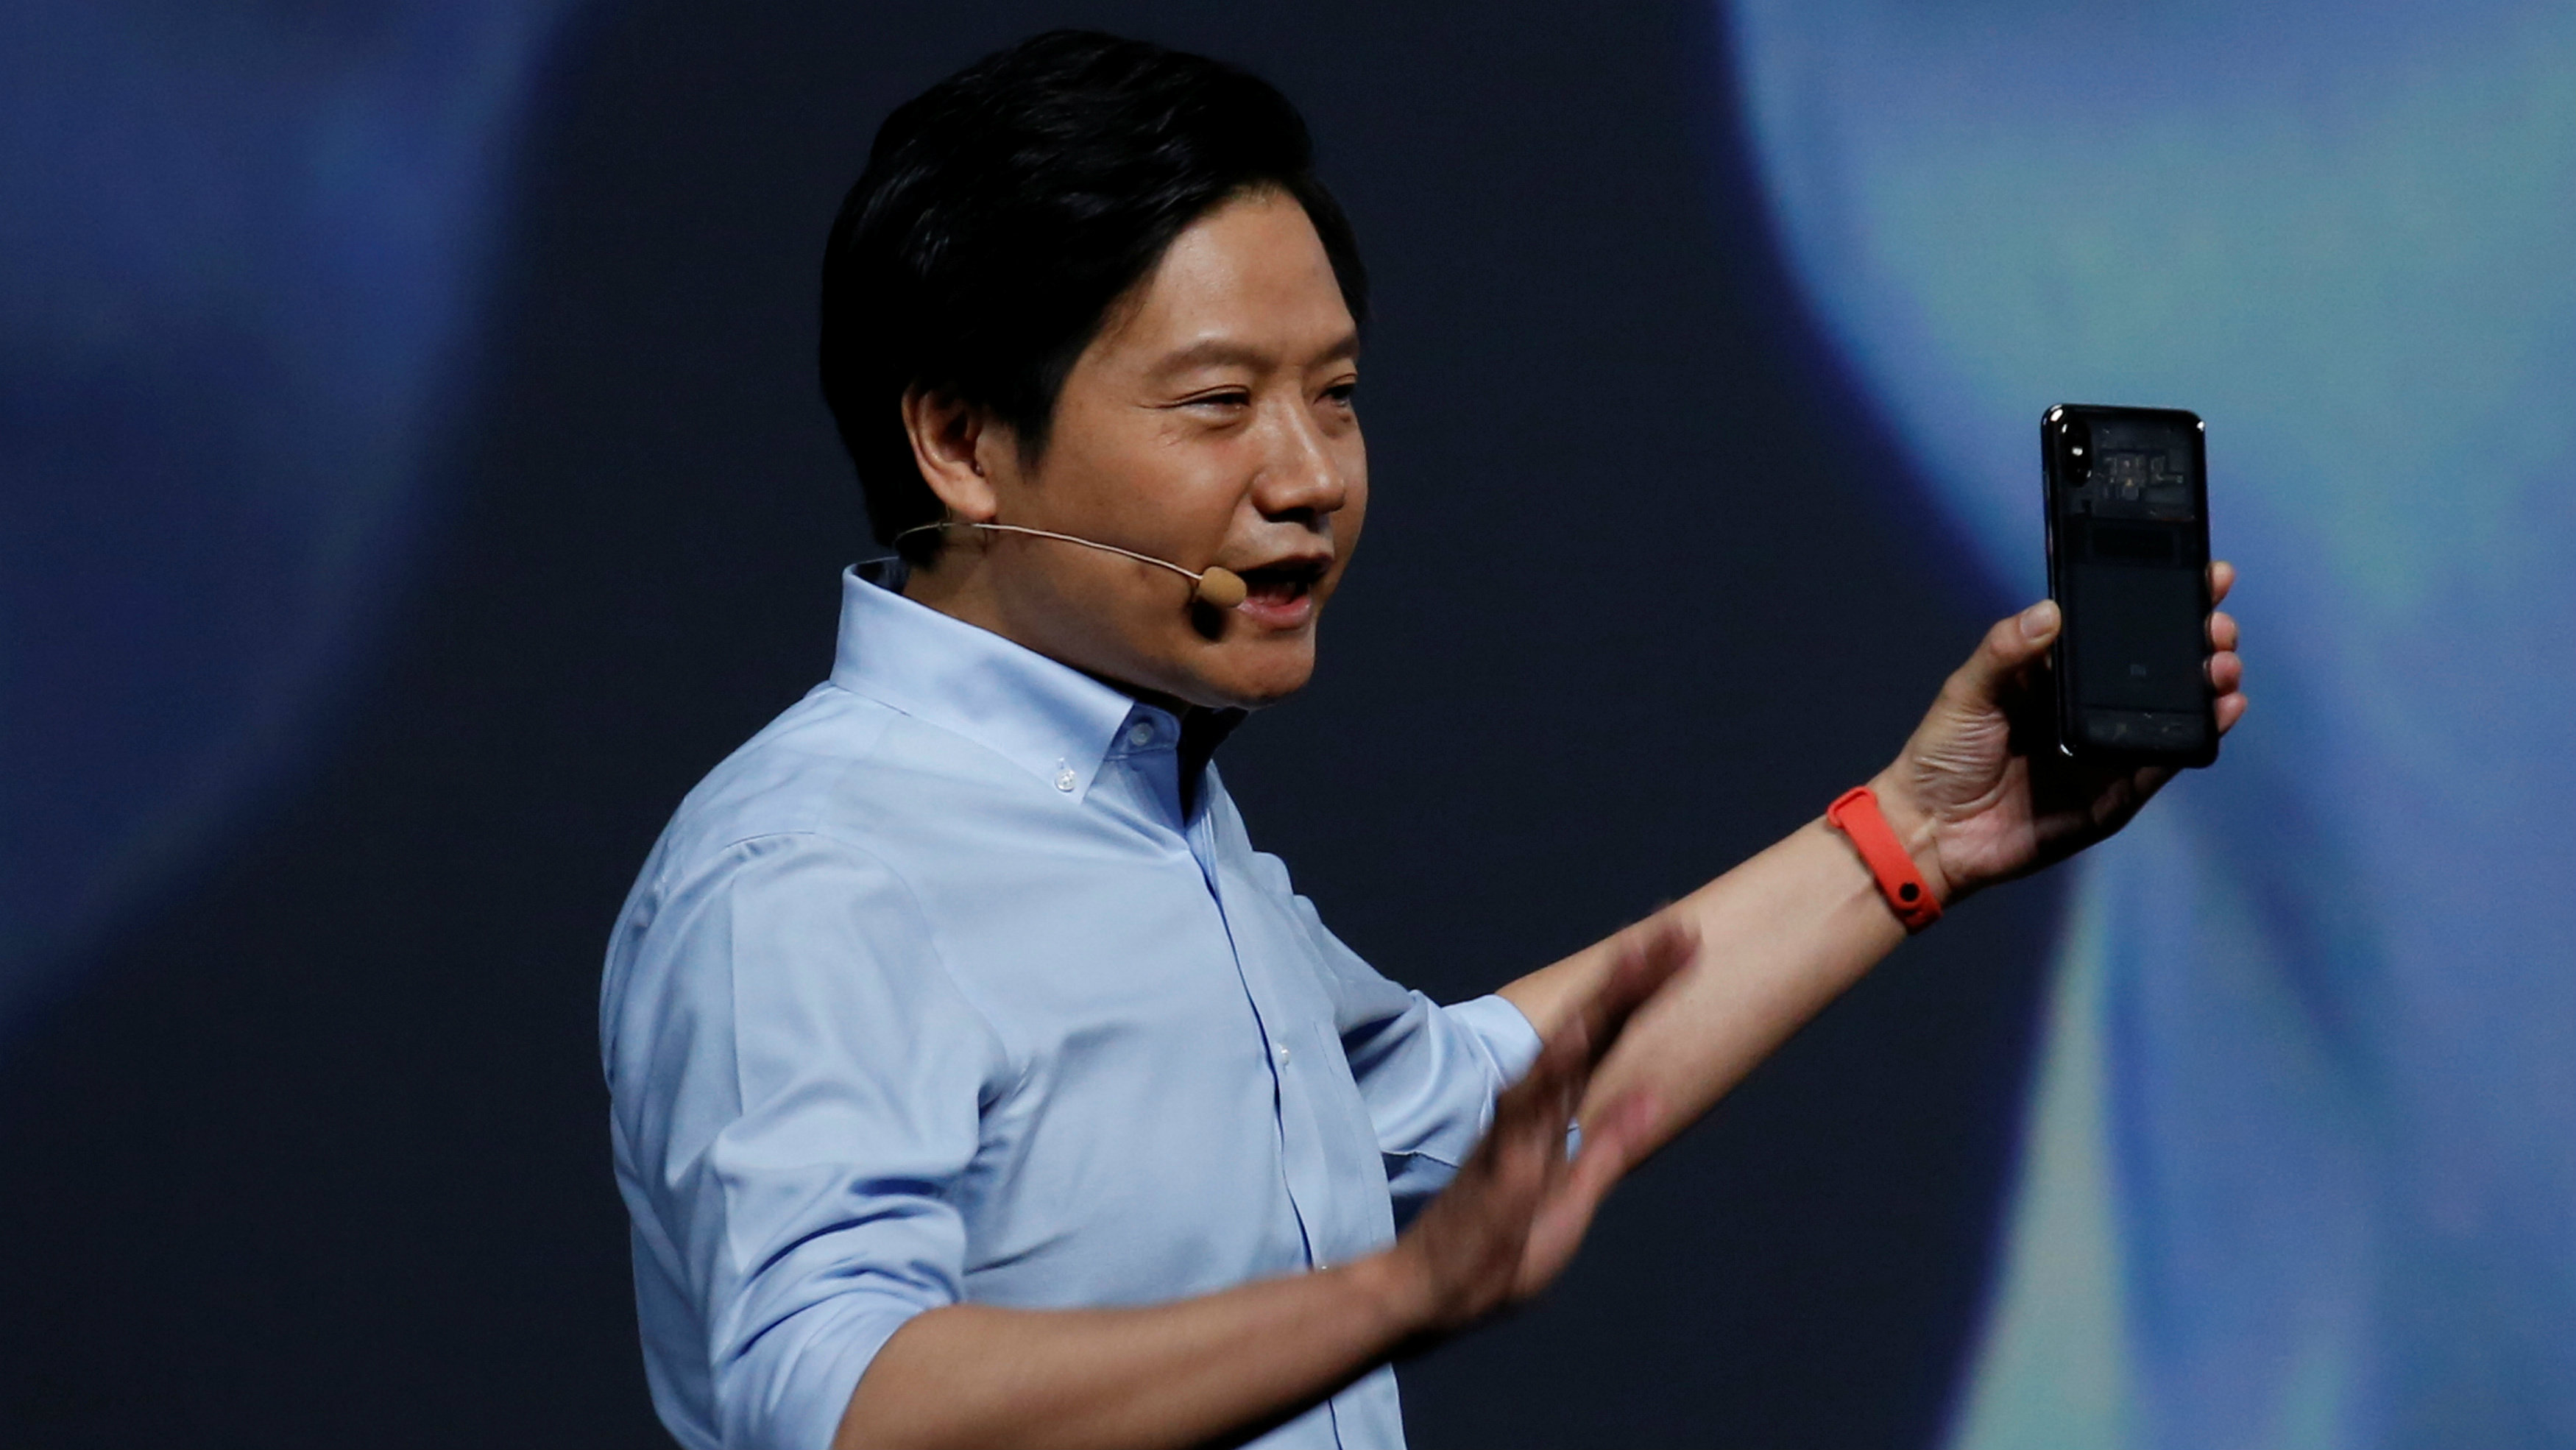 Xiaomi founder Lei Jun introduces the flagship Mi 8 transparent Explorer Edition during a product launch in Shenzhen, China May 31, 2018